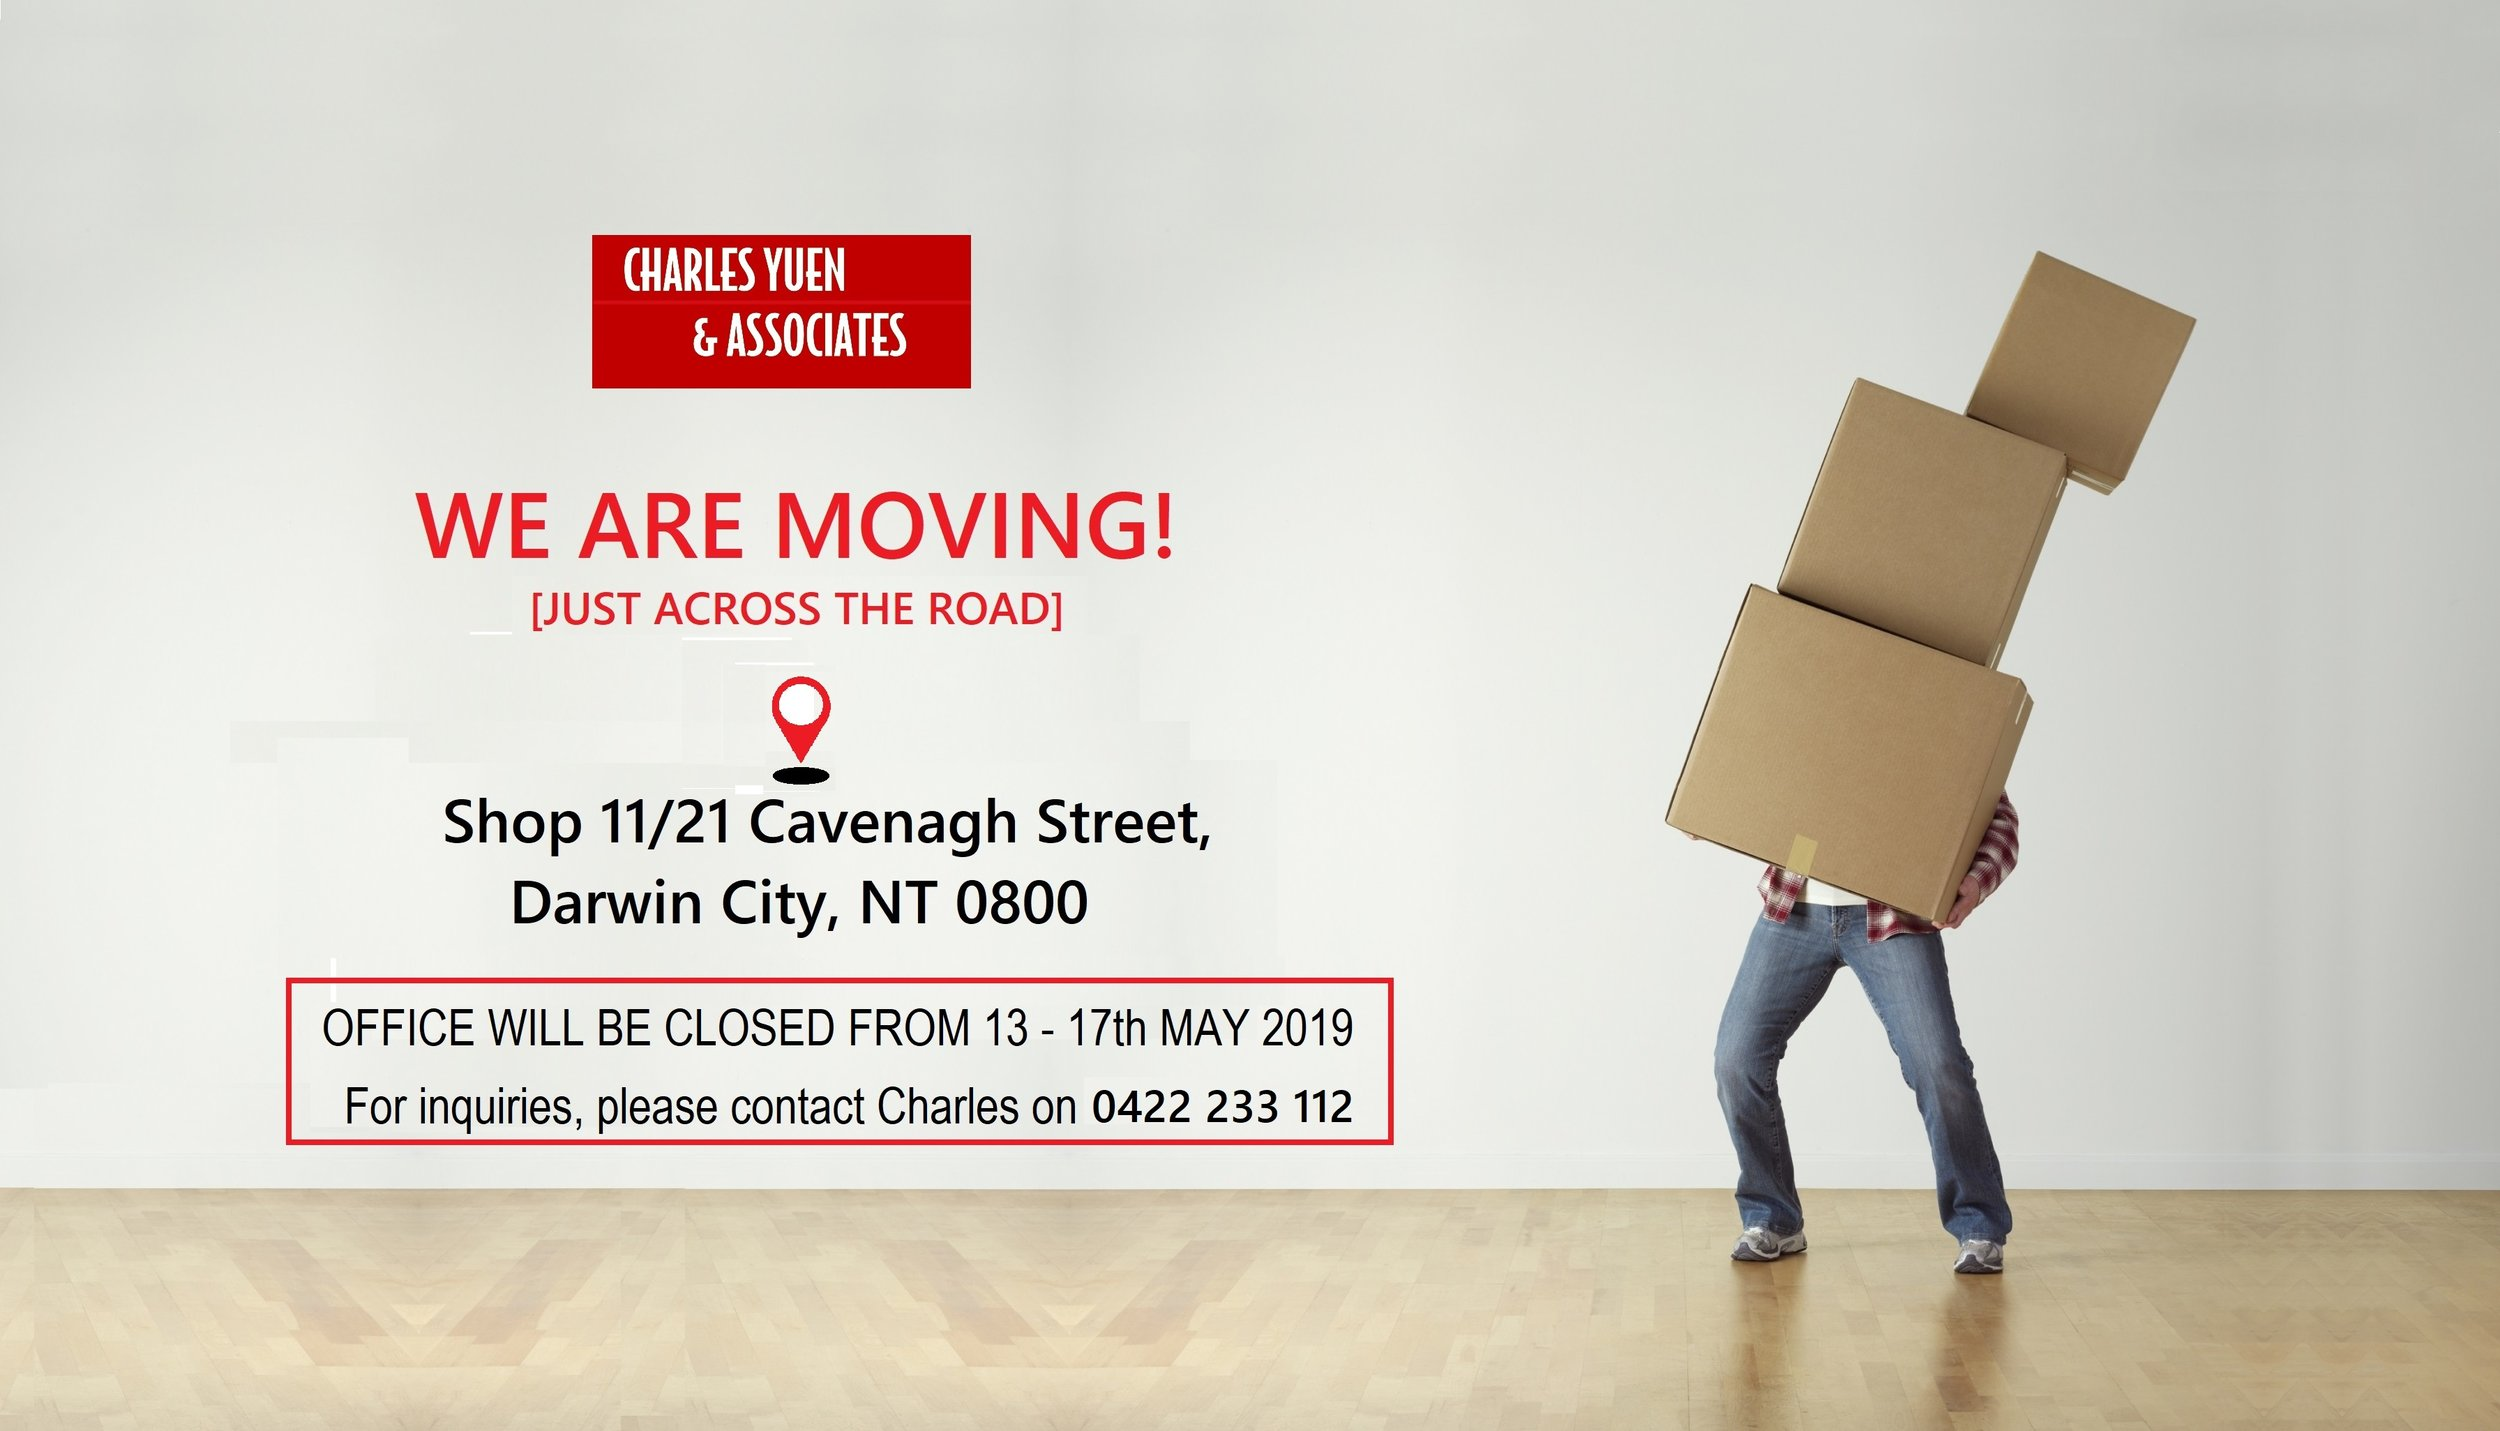 Office moving notice with date.jpg